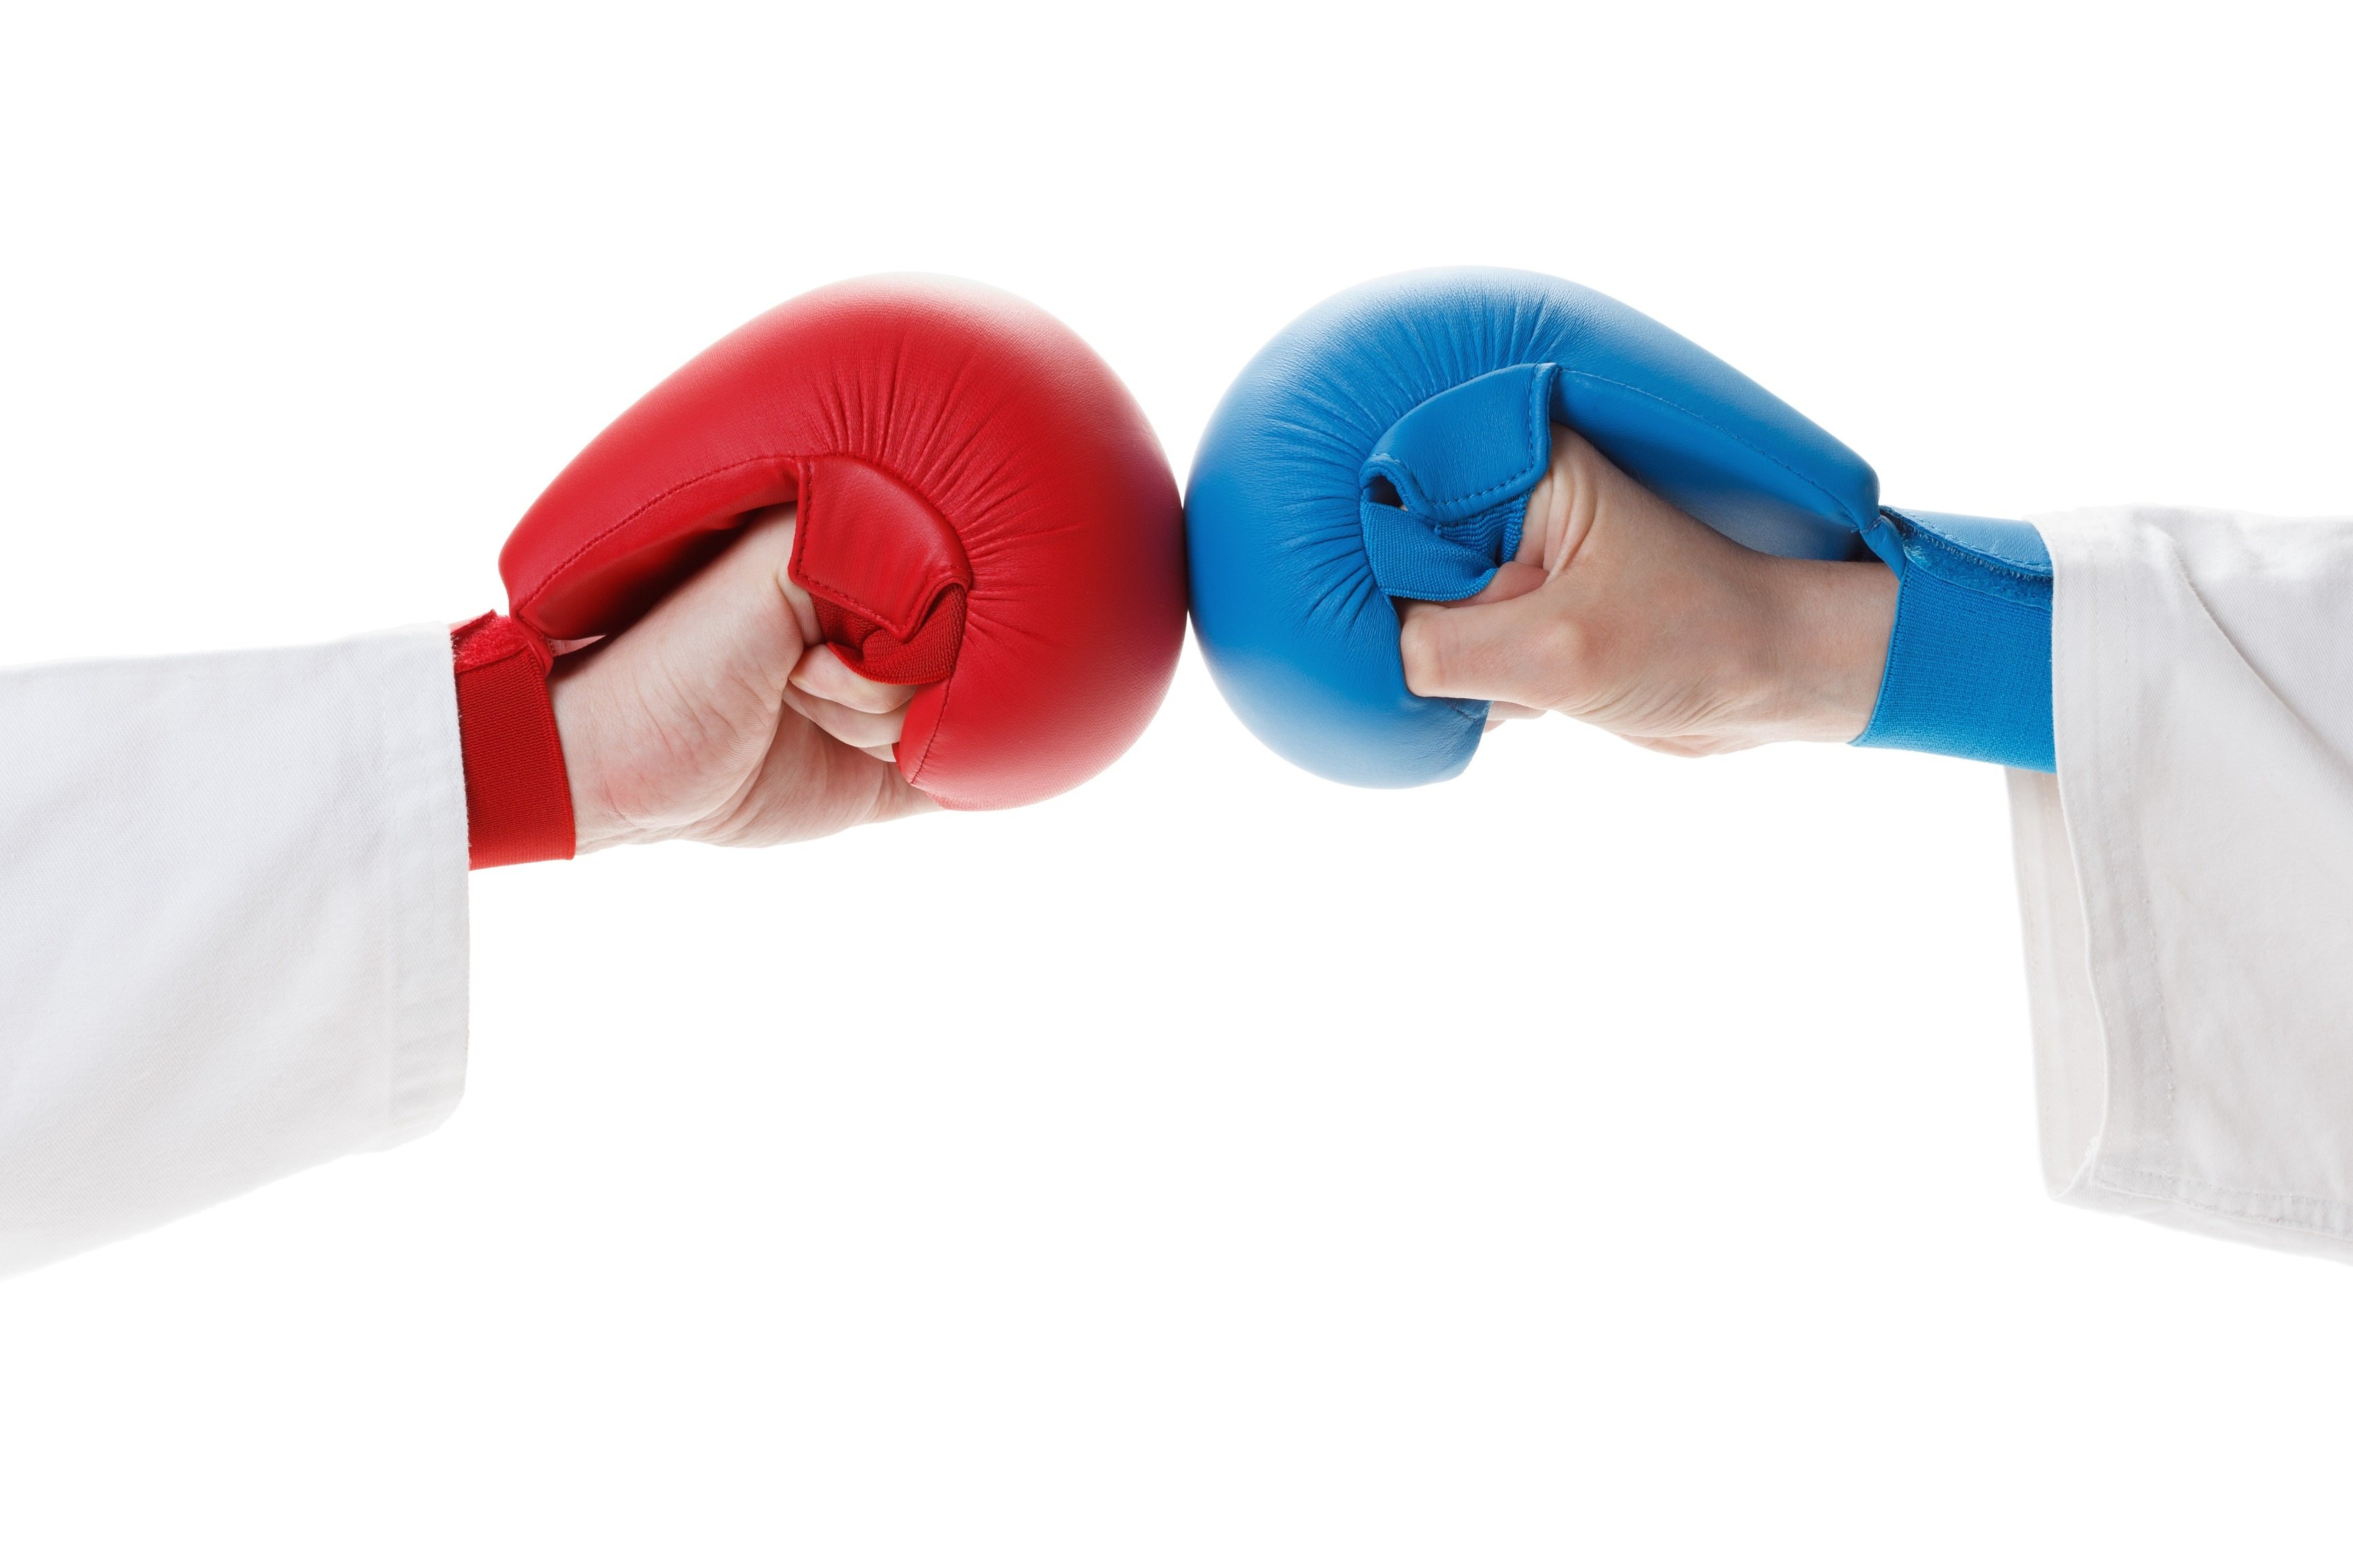 Students in karate gloves fist bump as they prepare to spar.